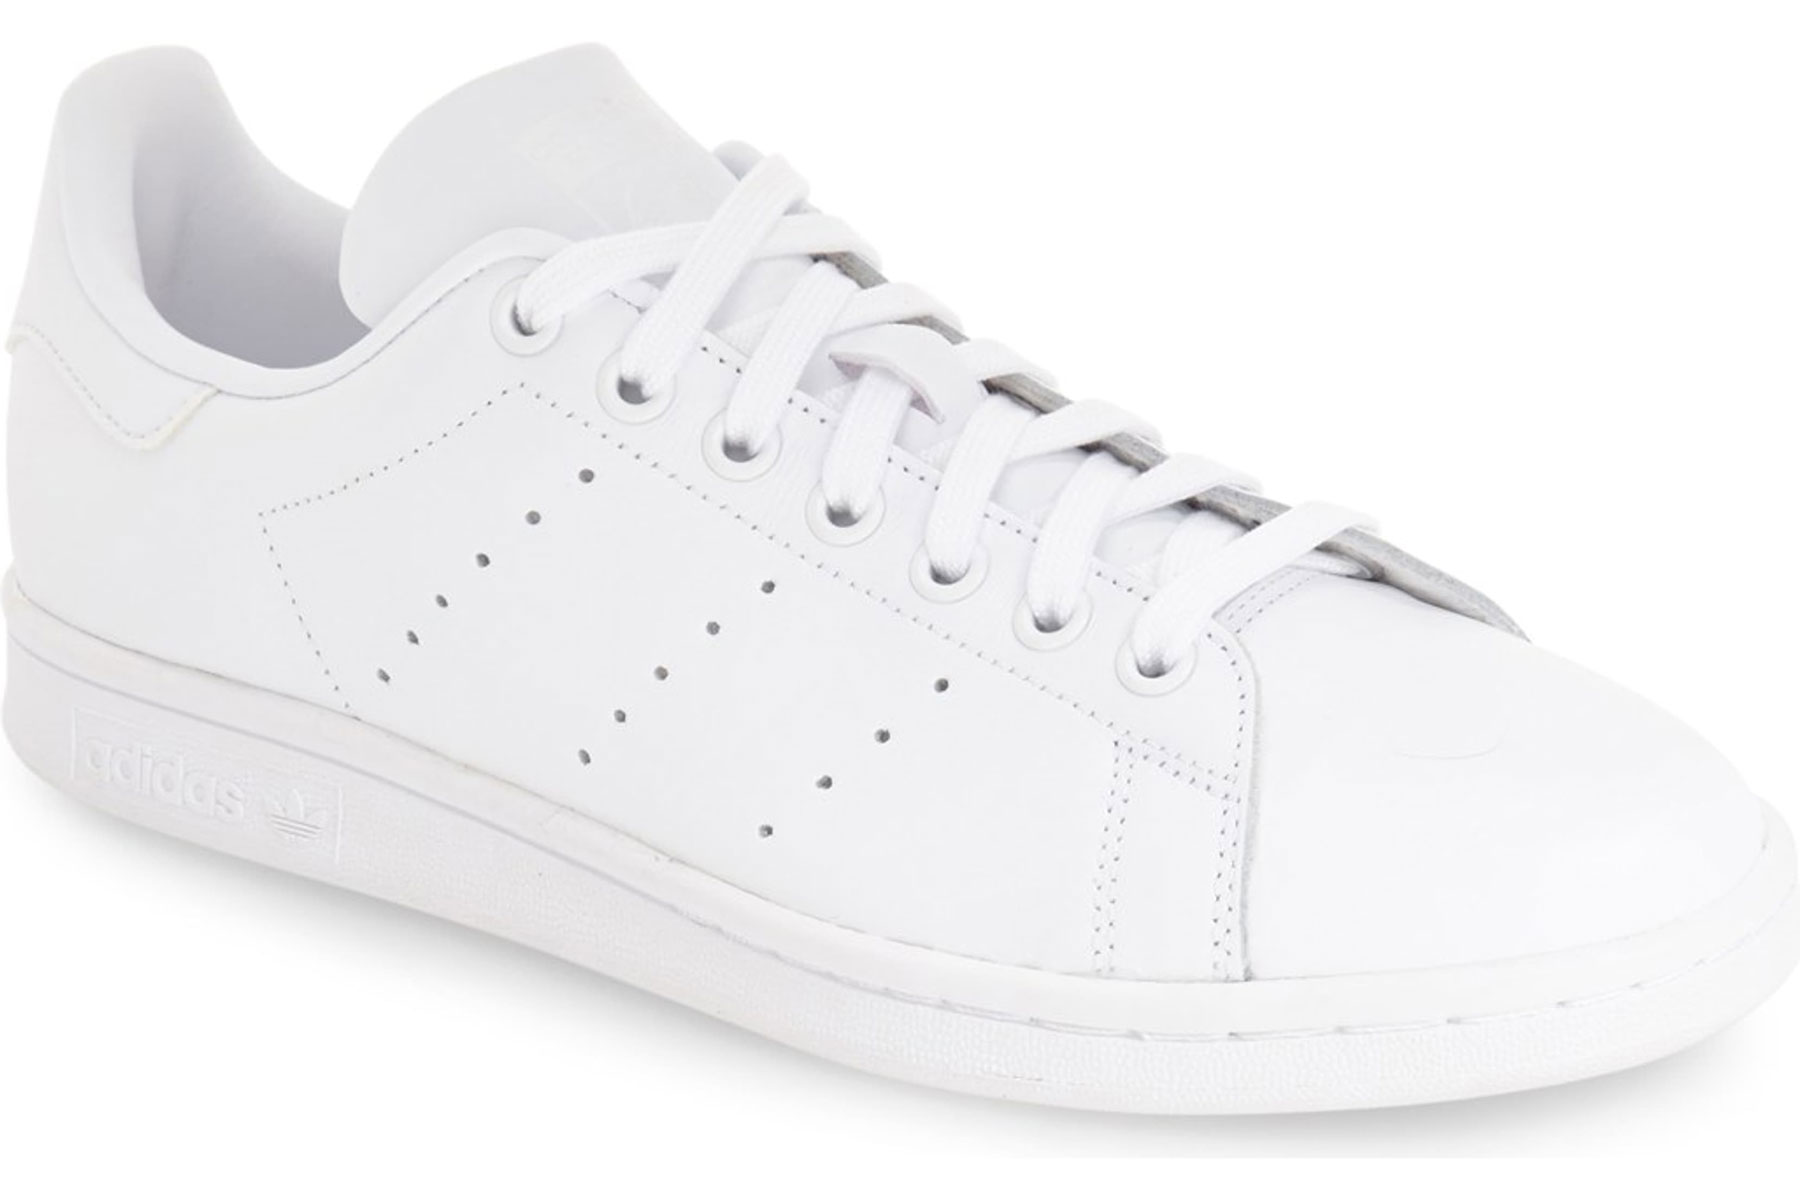 Men's white leather sneakers